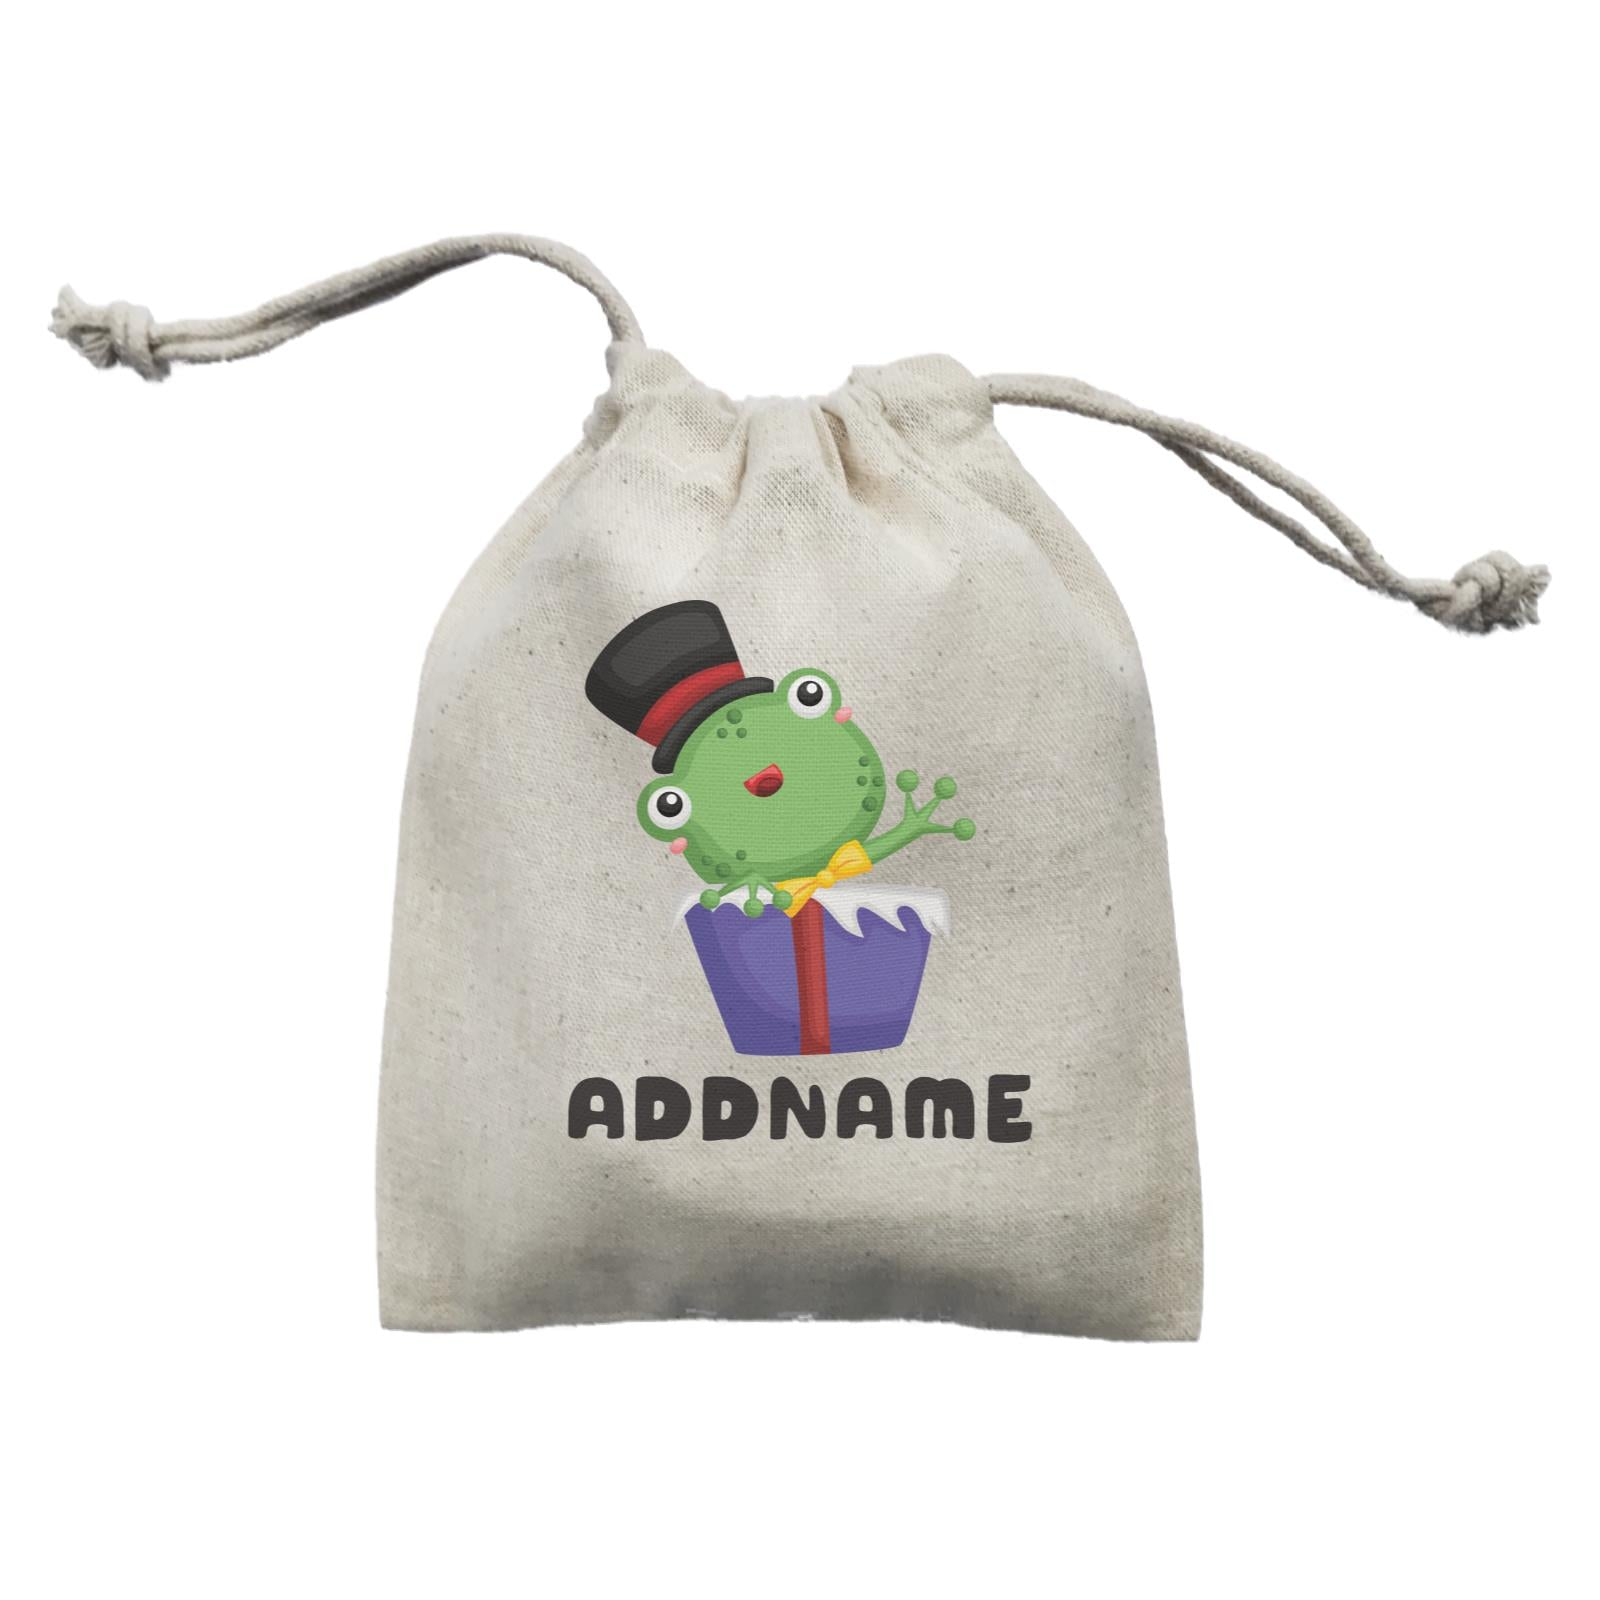 Birthday Frog Frog Wearing Hat Inside Present Box Addname Mini Accessories Mini Pouch